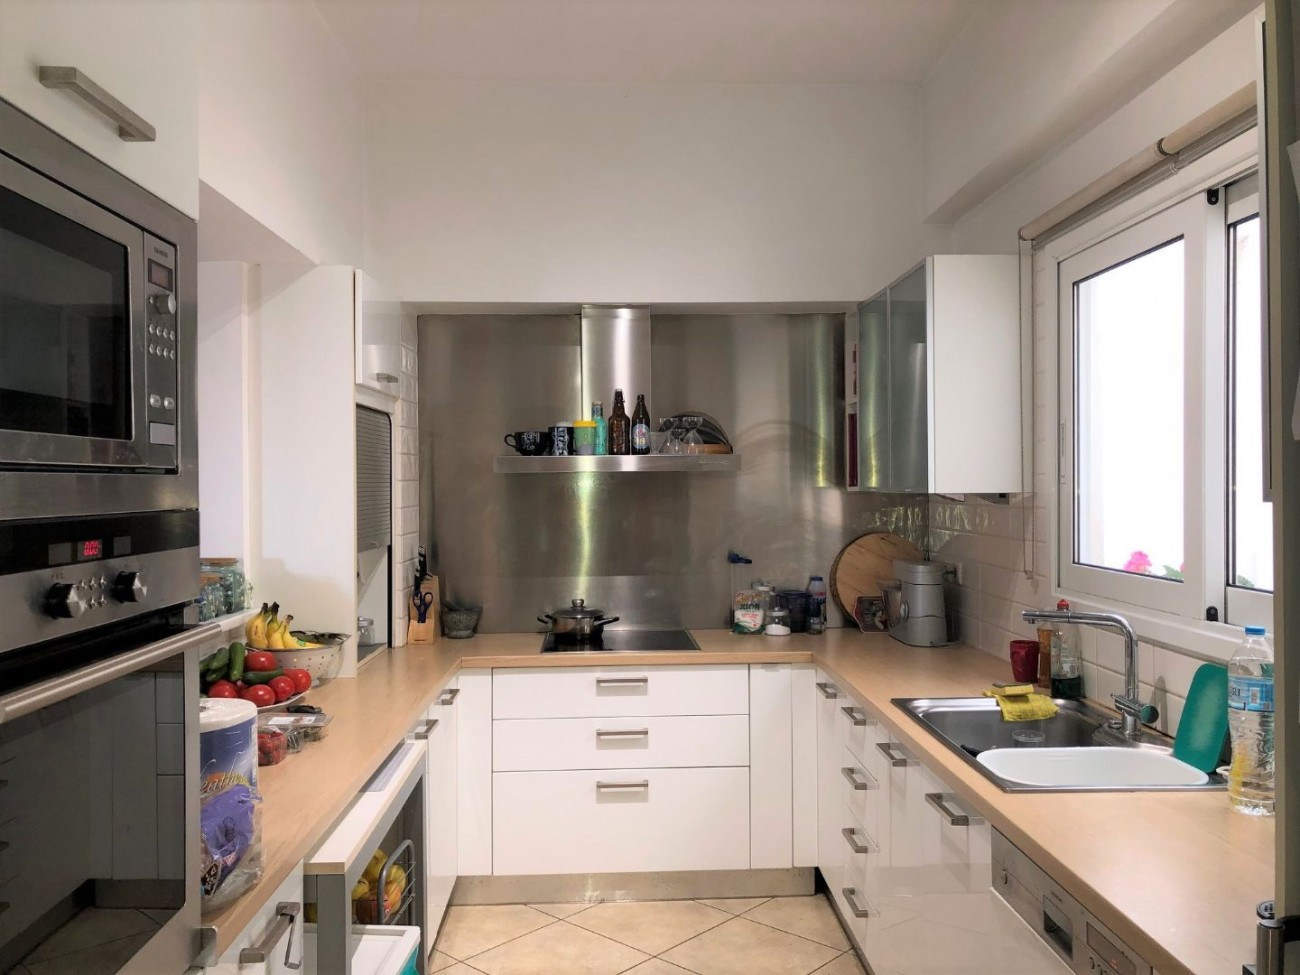 Apartment for Rent in Upper Kipseli, Athens City Center, Greece